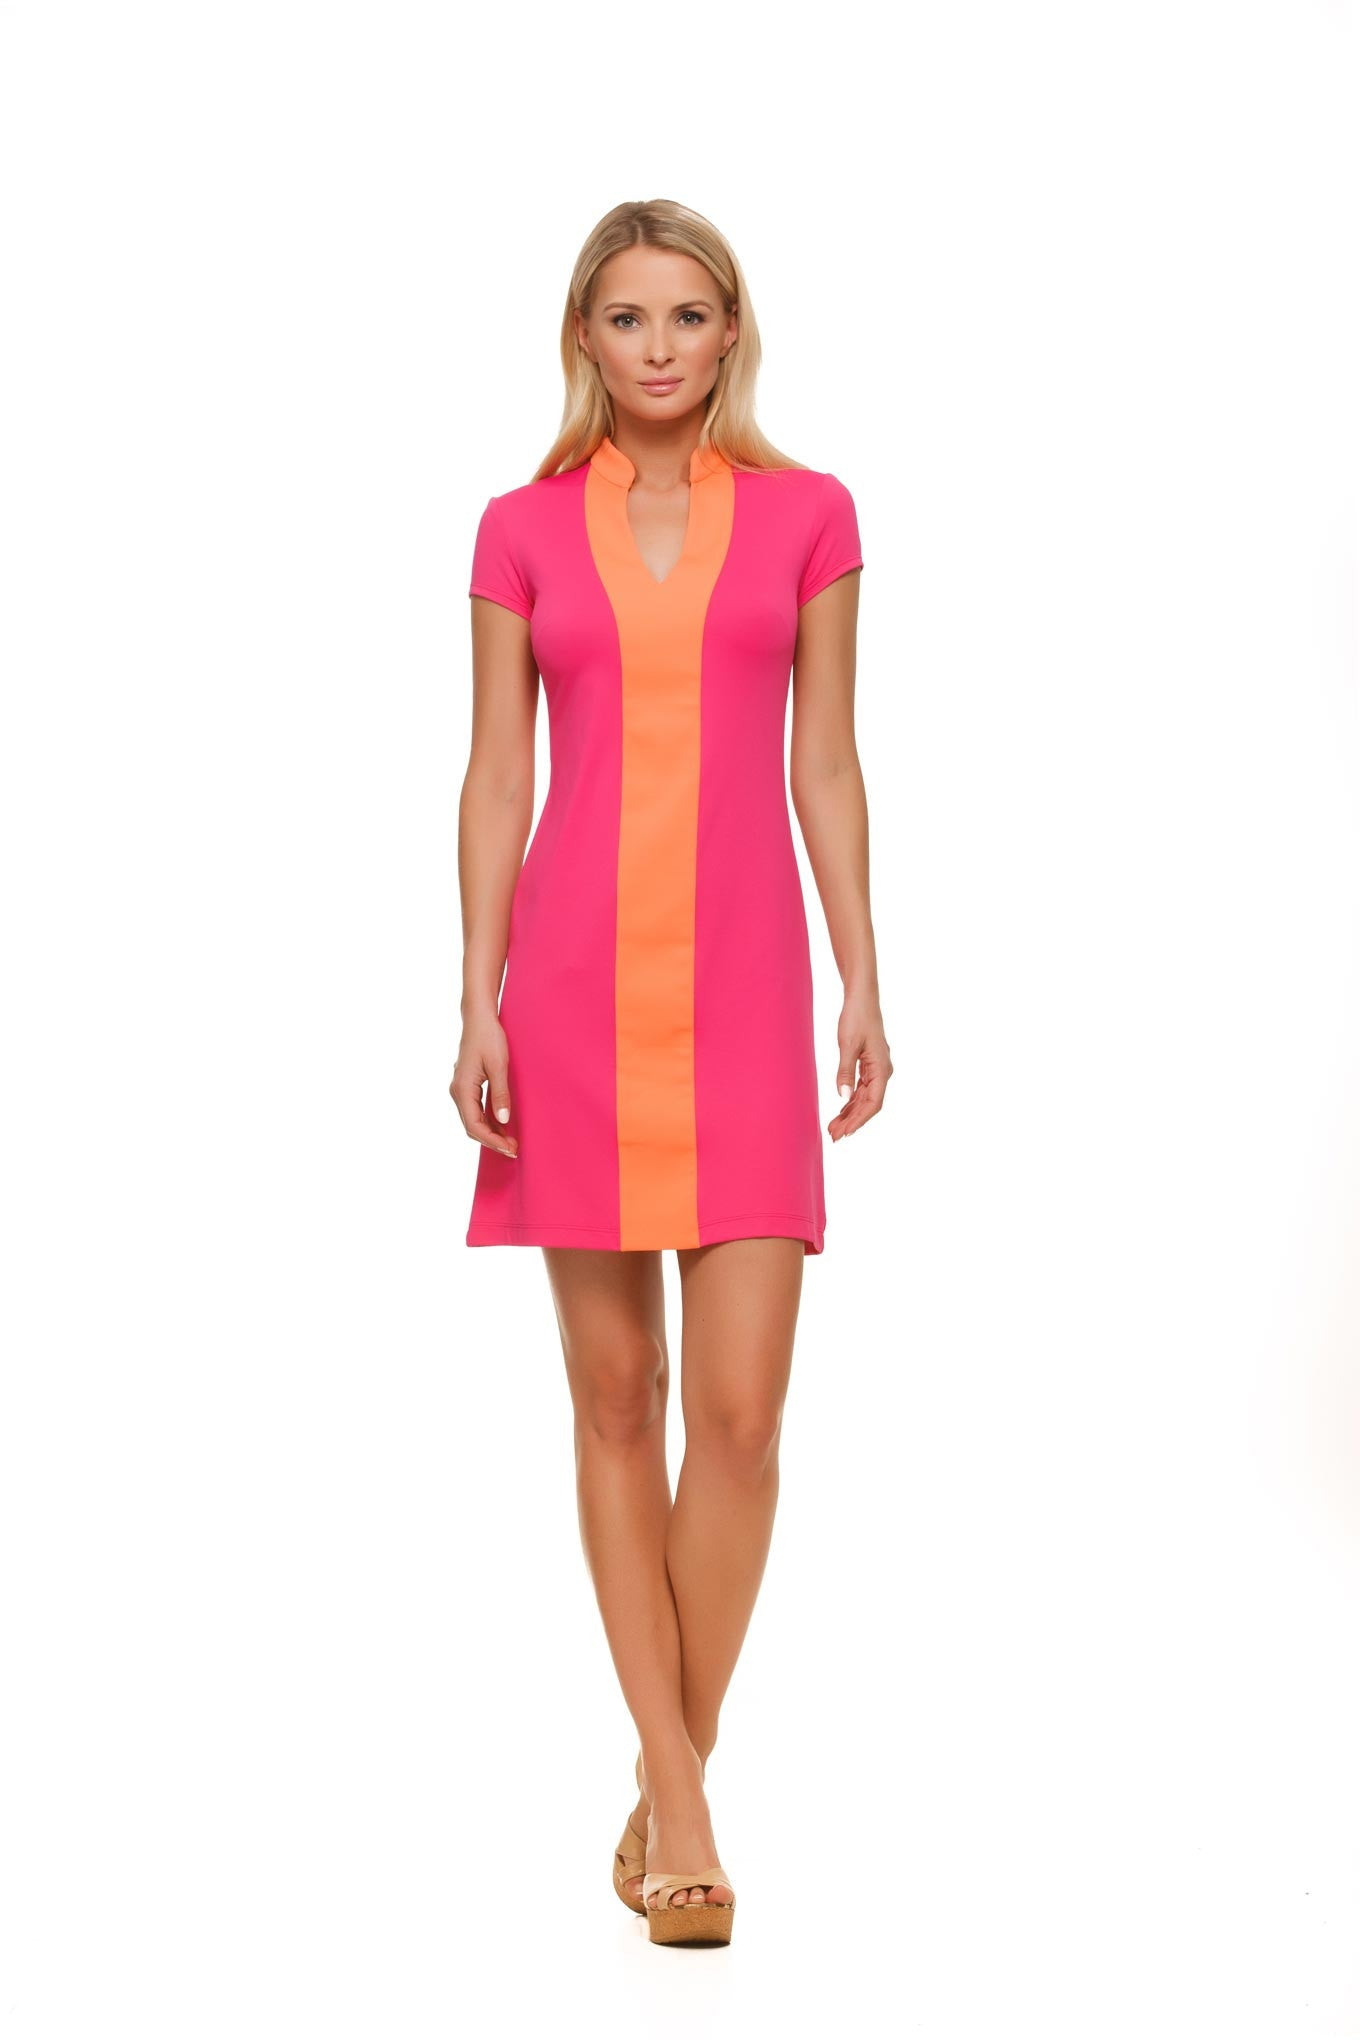 28485044d Avery Dress in Pink and Orange Color Block - Rulon Reed